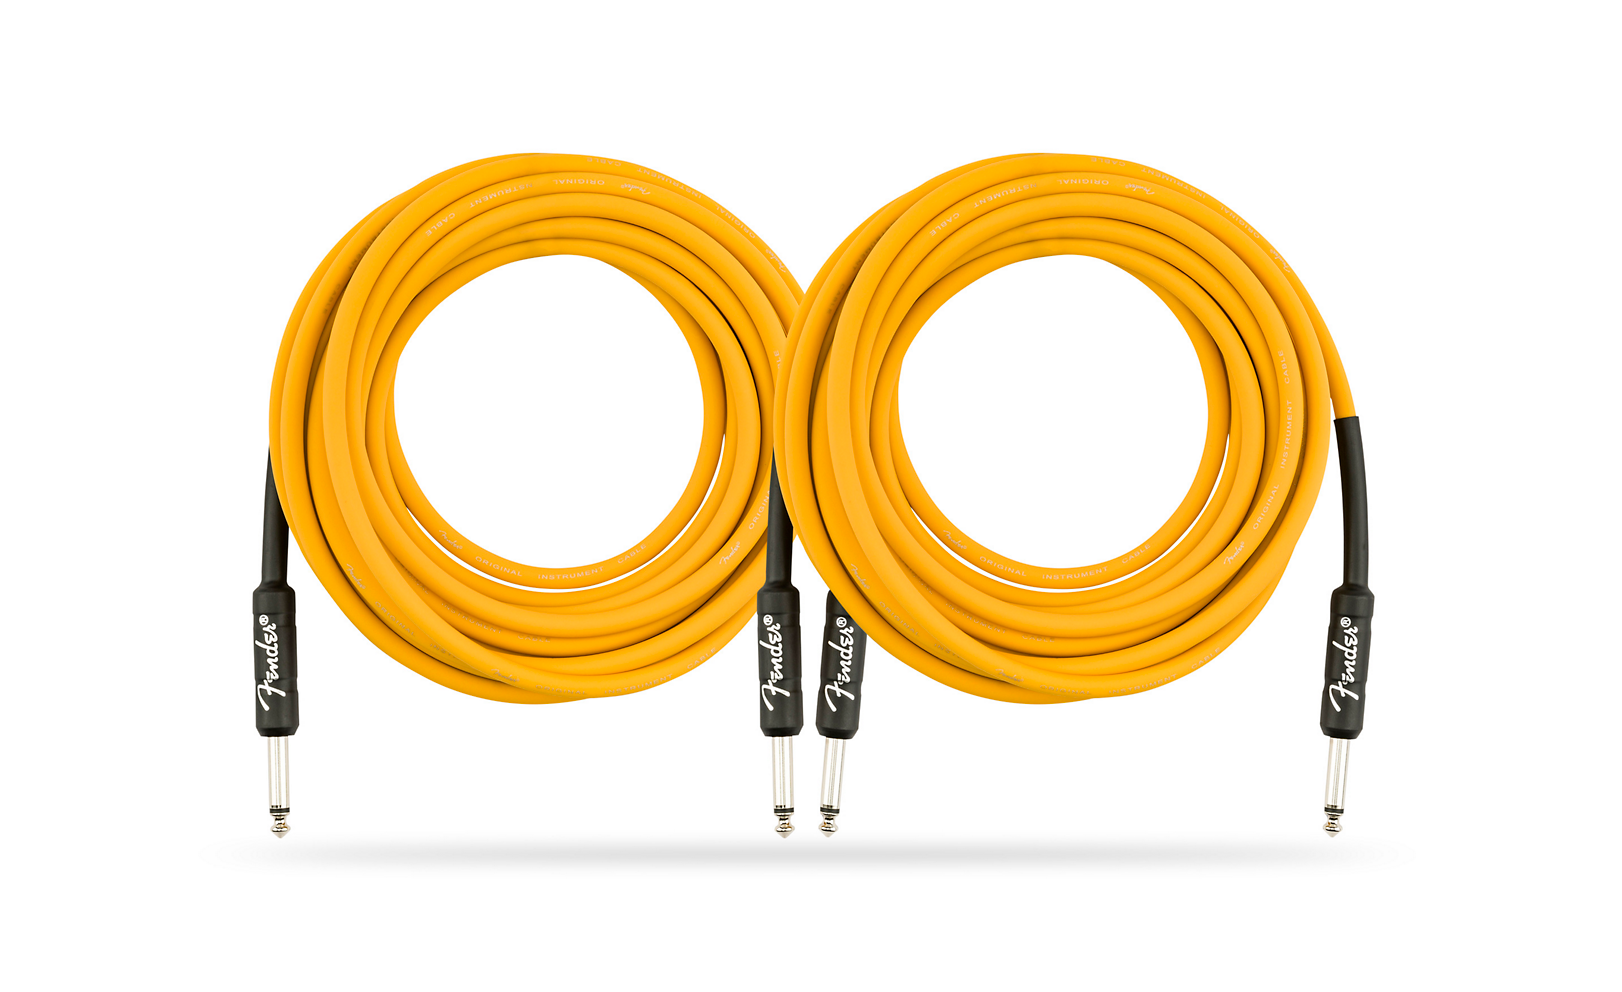 2-Pack 18.6 ft. Fender Original Series Limited Edition Butterscotch Blonde Instrument Cable $30 at Guitar Center + FS [12/2 only]